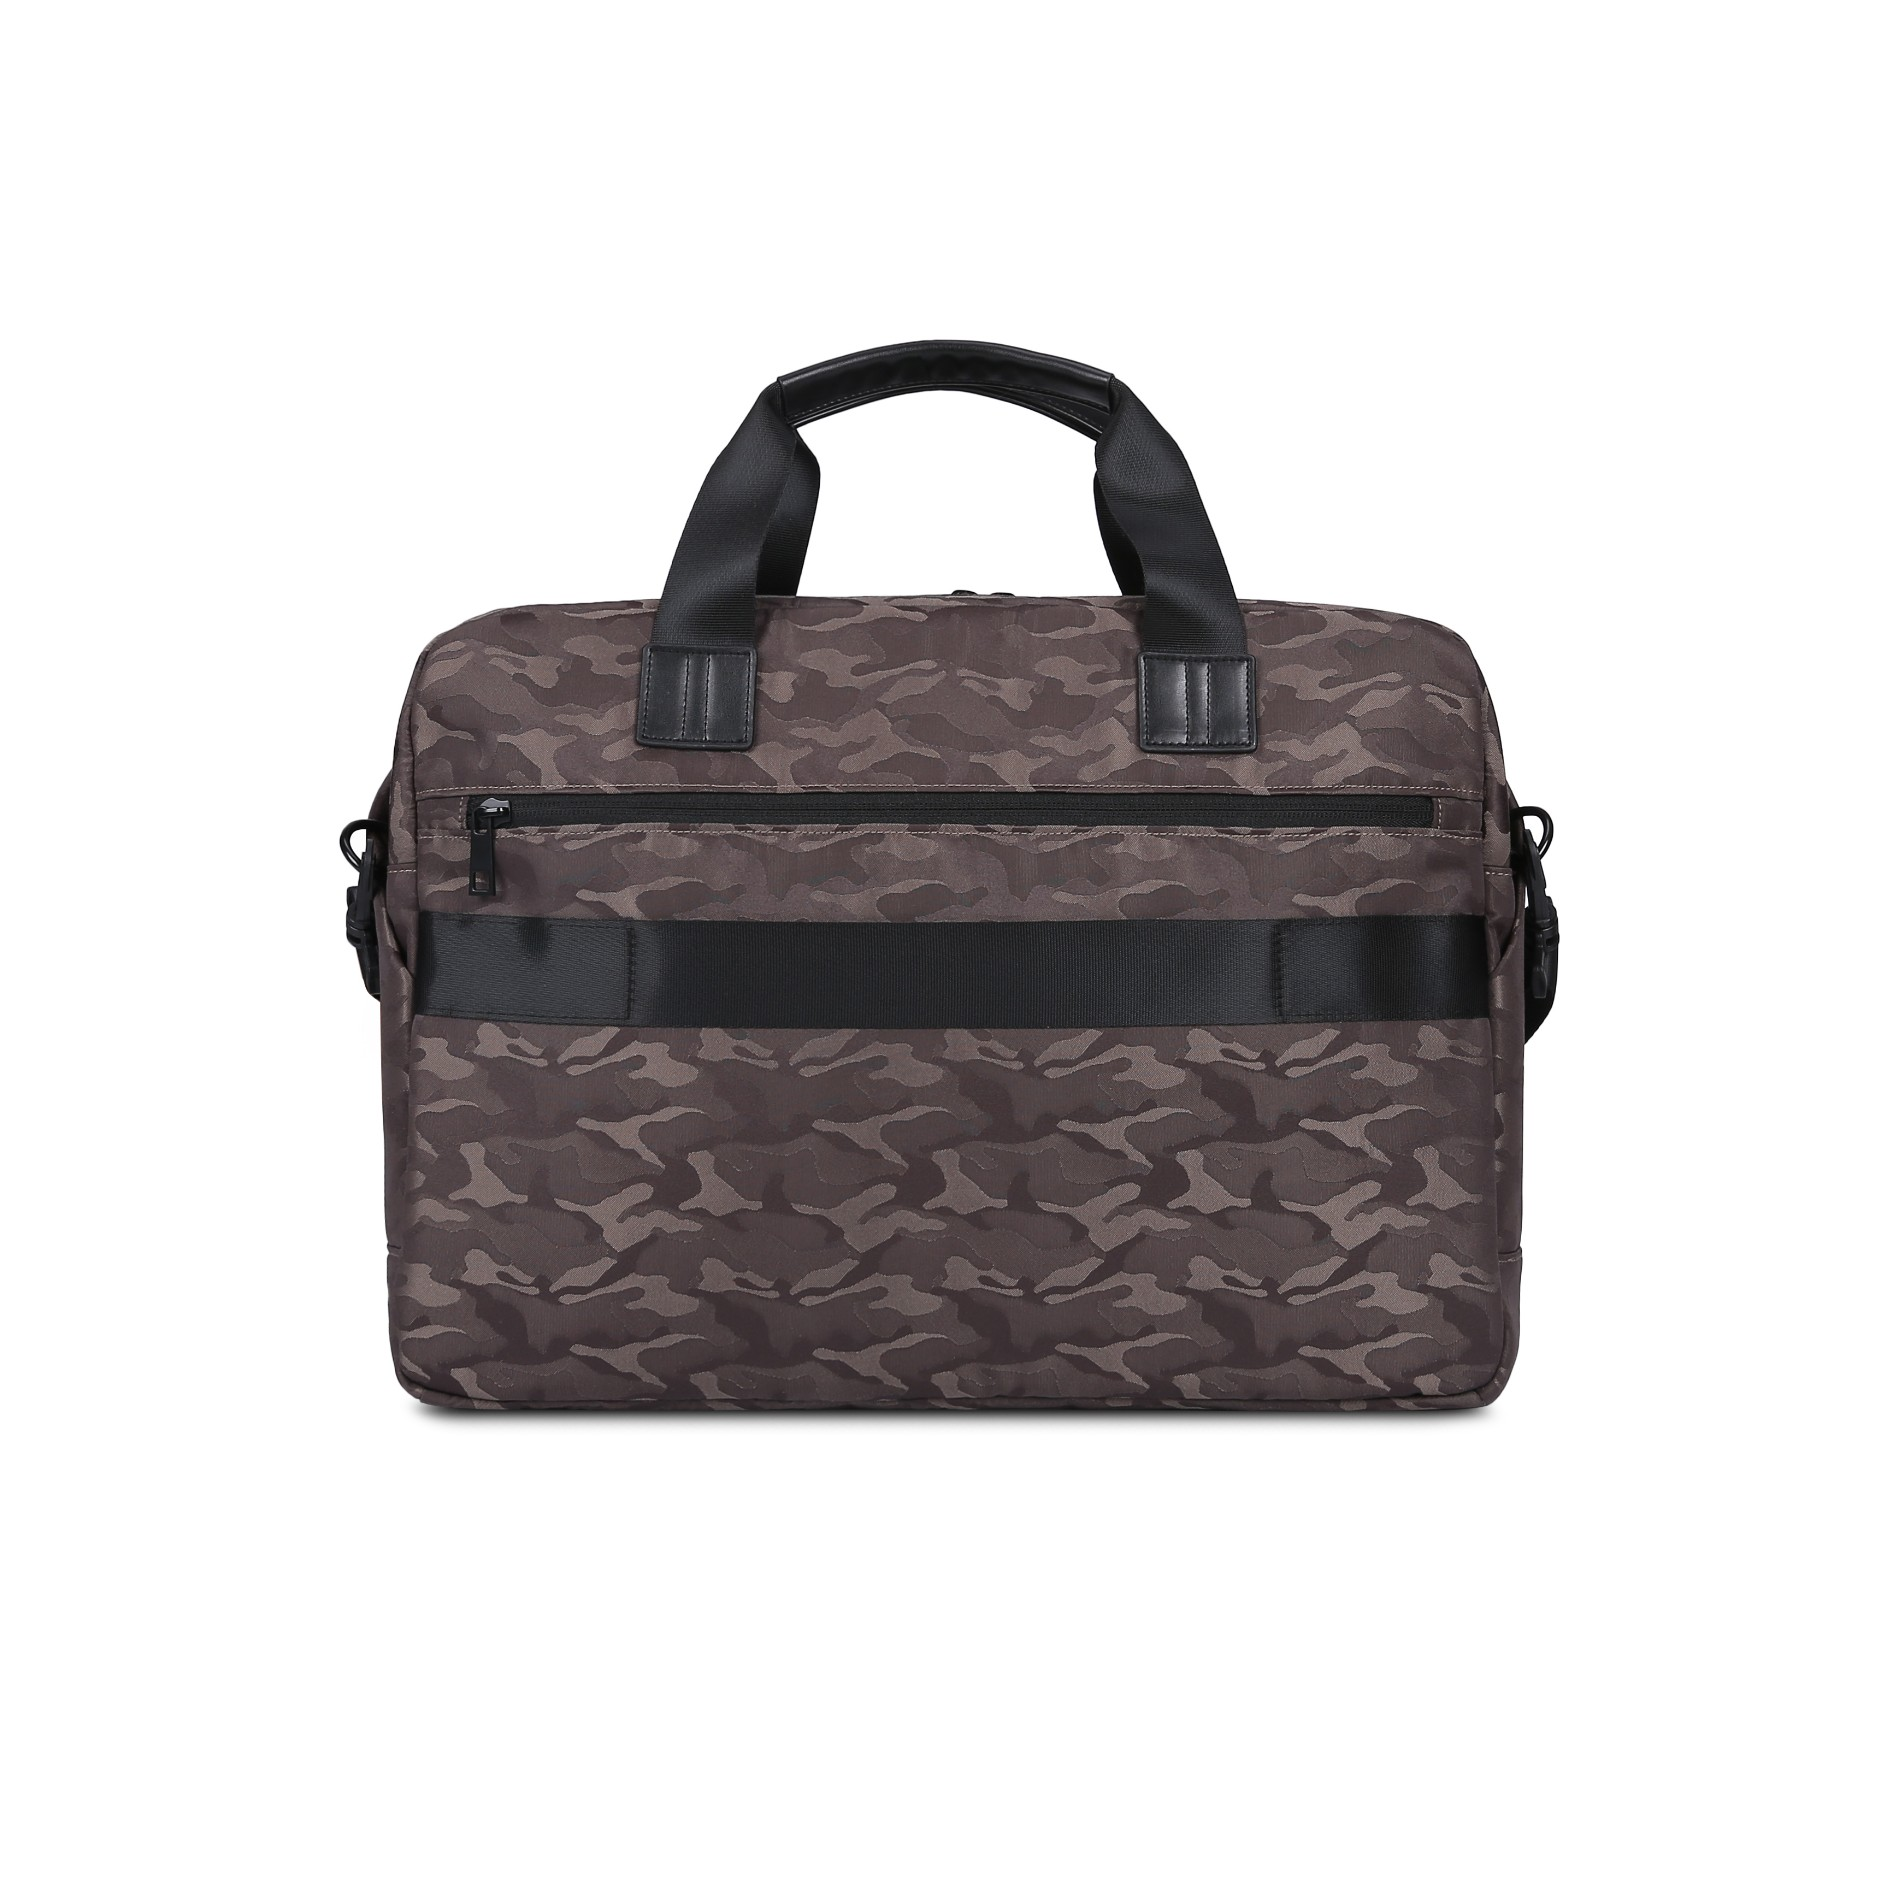 Business Laptop Briefcases Manufacturers, Business Laptop Briefcases Factory, Supply Business Laptop Briefcases